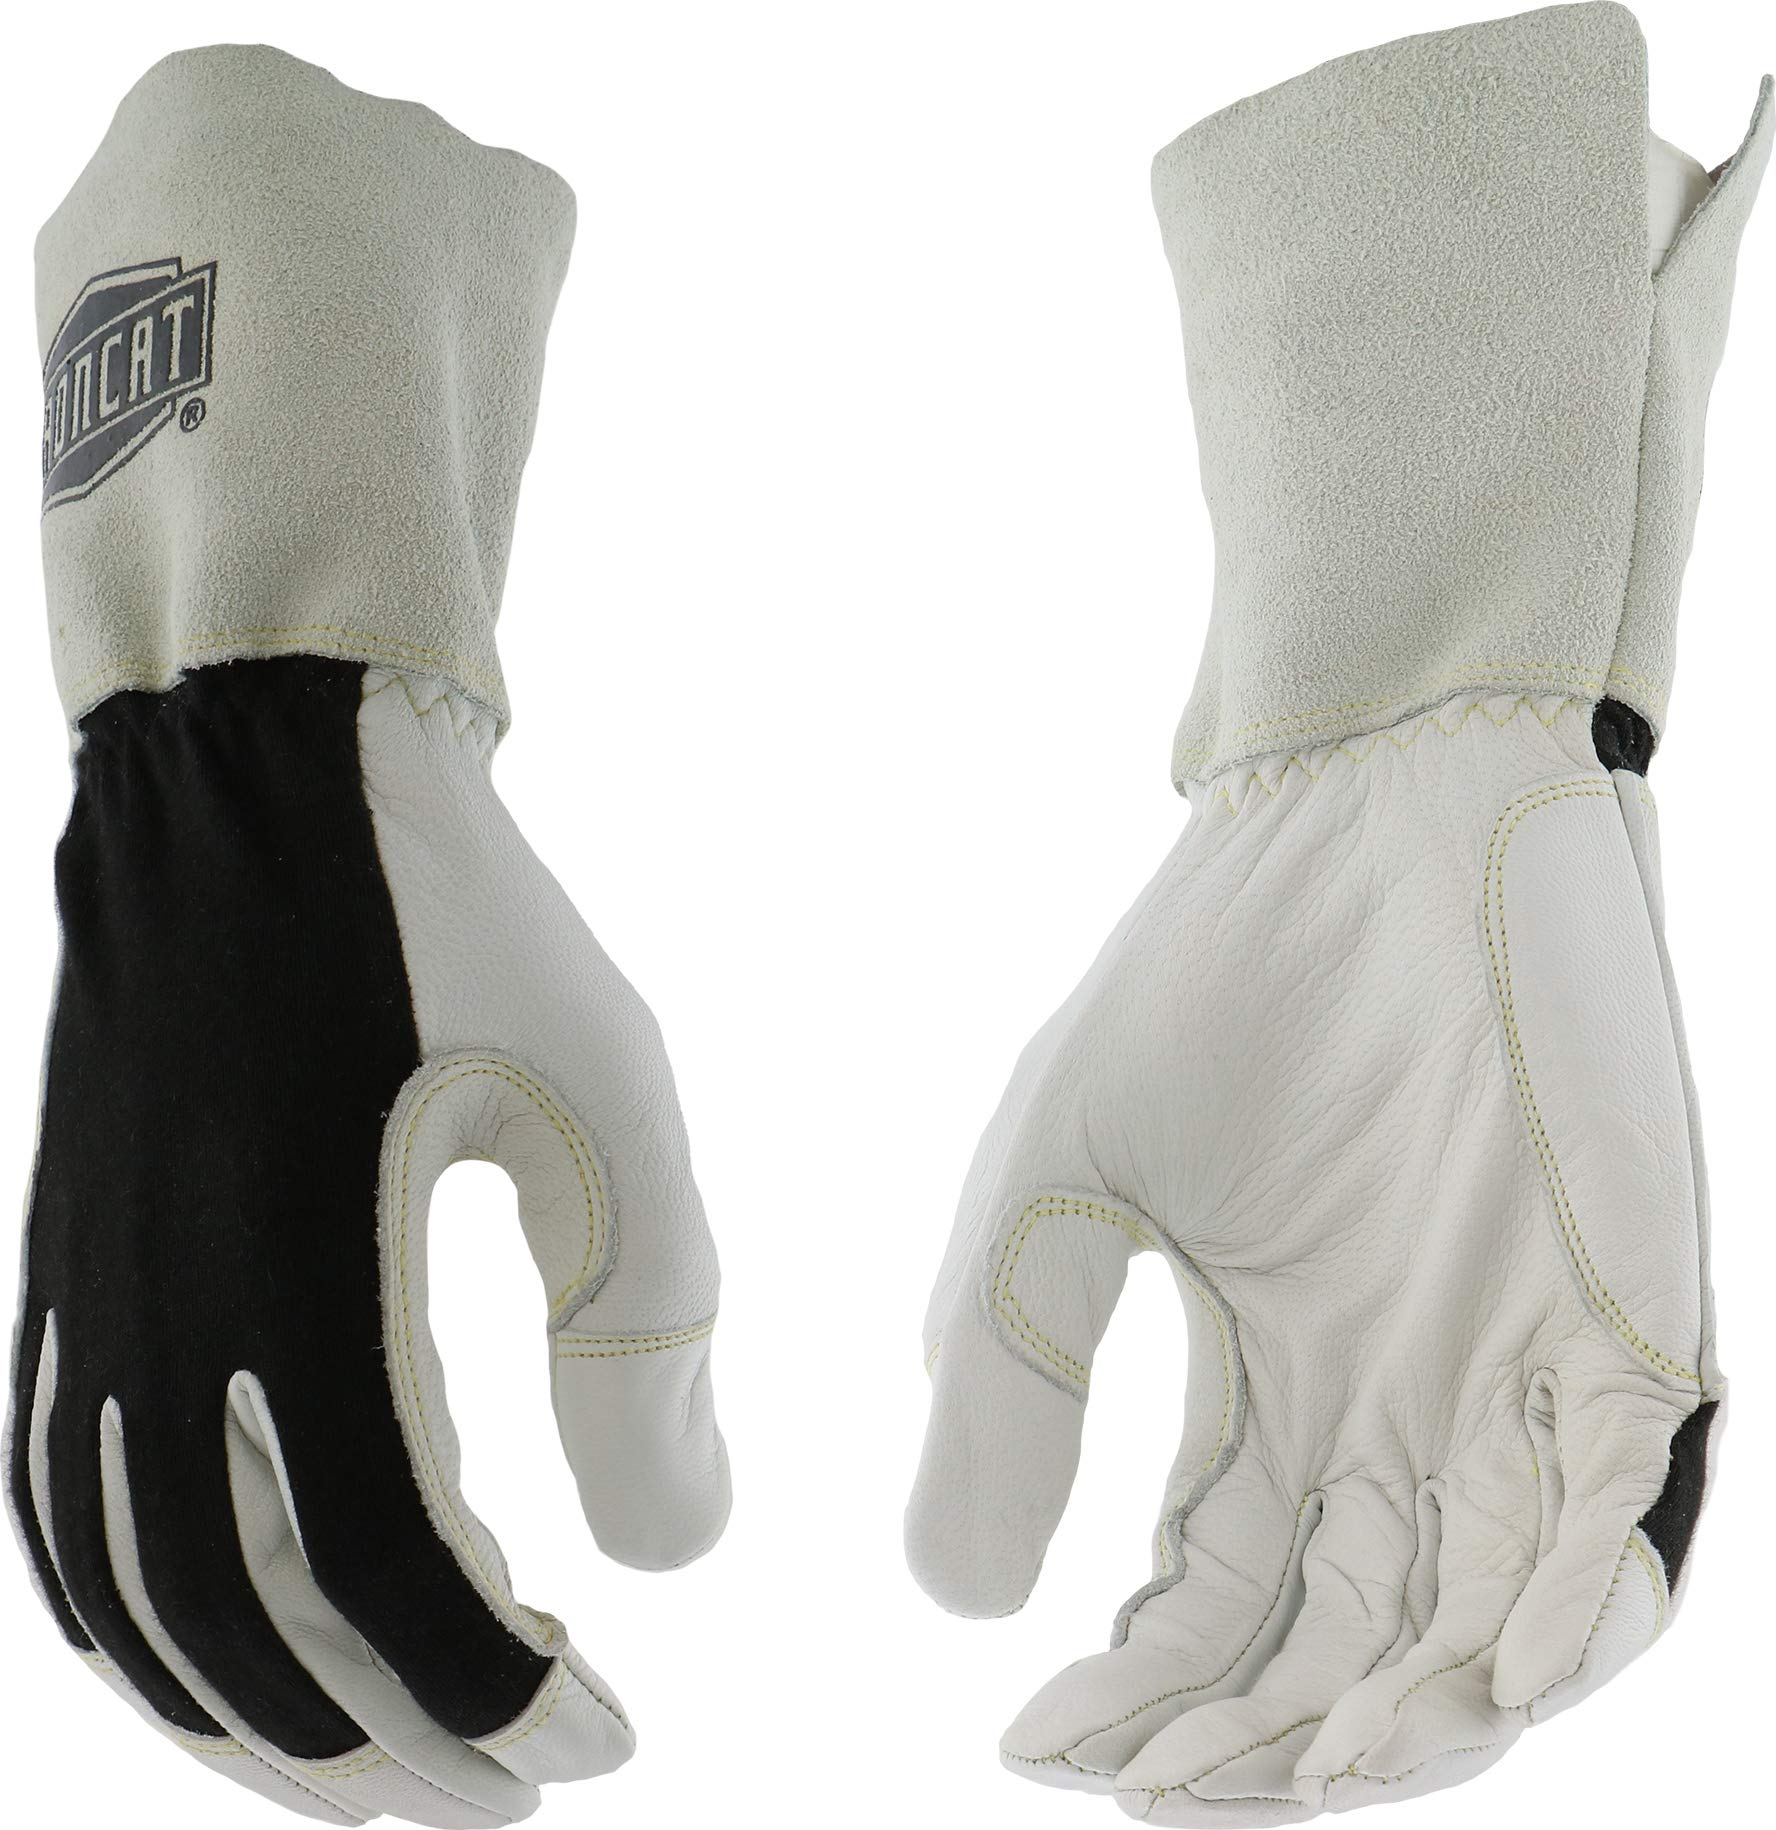 West Chester IRONCAT 9073 Premium Split Goatskin Leather TIG Welding Gloves: XX-Large, 1 Pair by West Chester